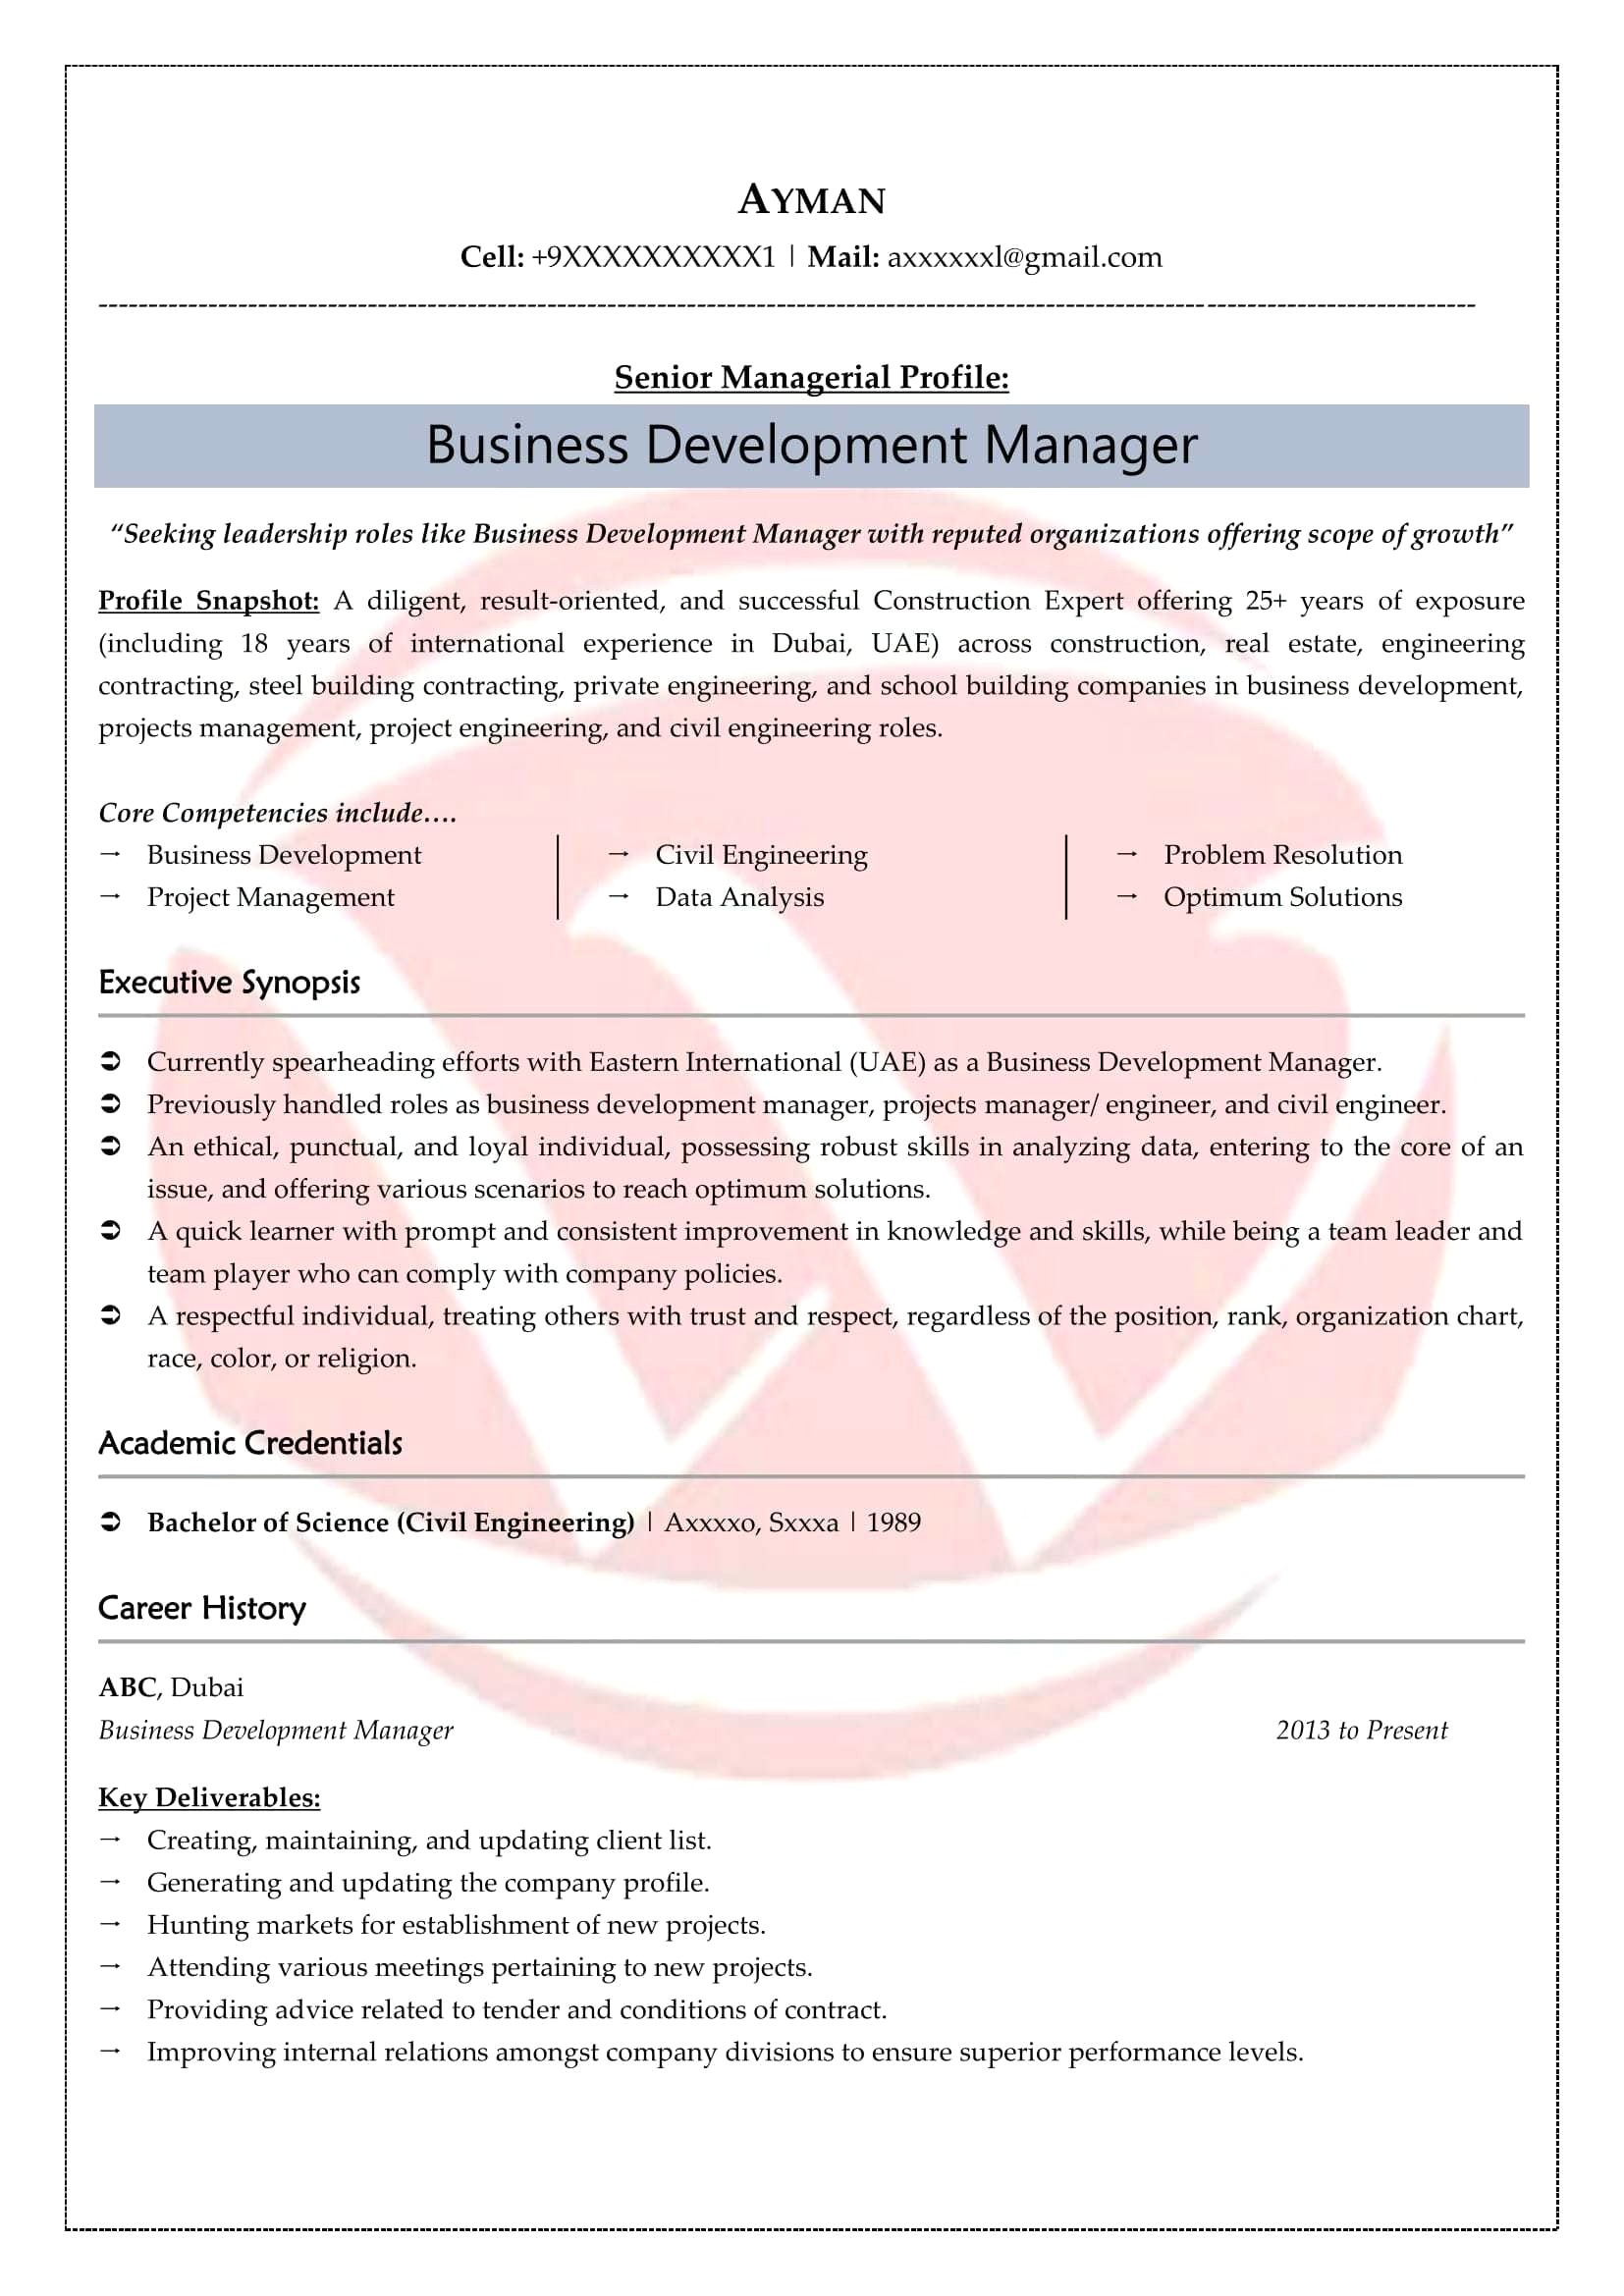 Sample Resume for Linux System Administrator Fresher 13 New Resume format for Linux System Administrator